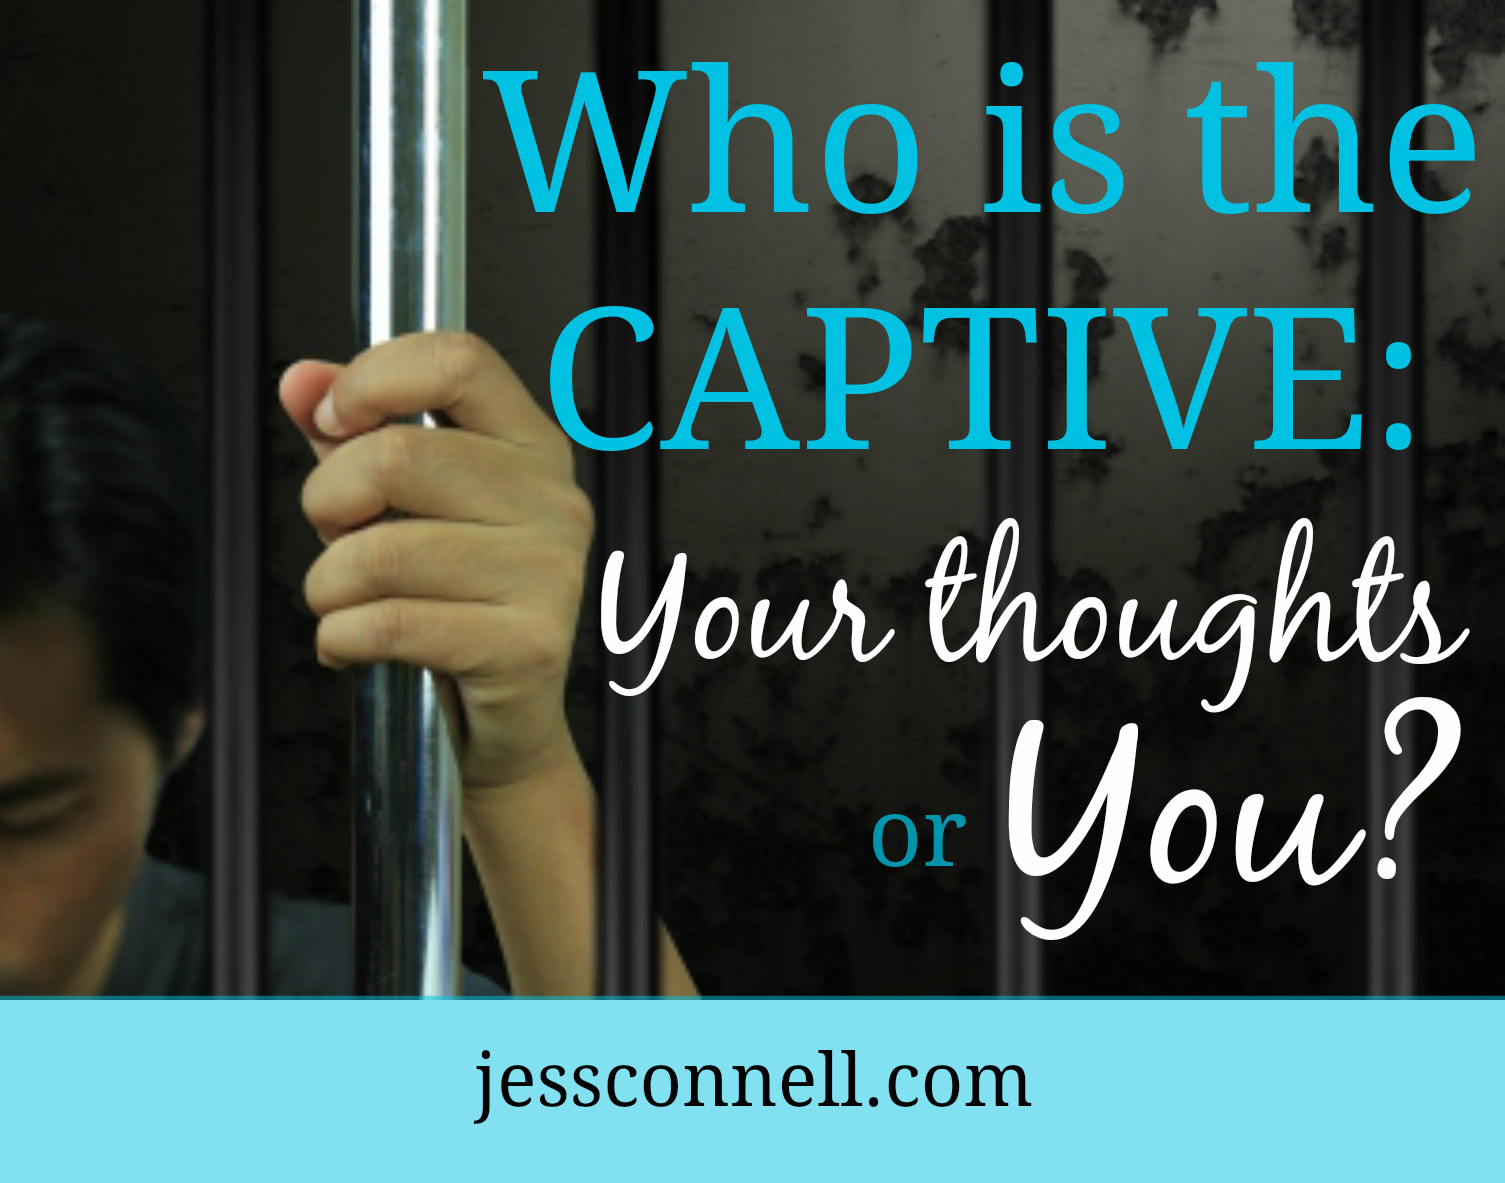 Who is the Captive: Your Thoughts or YOU? // jessconnell.com